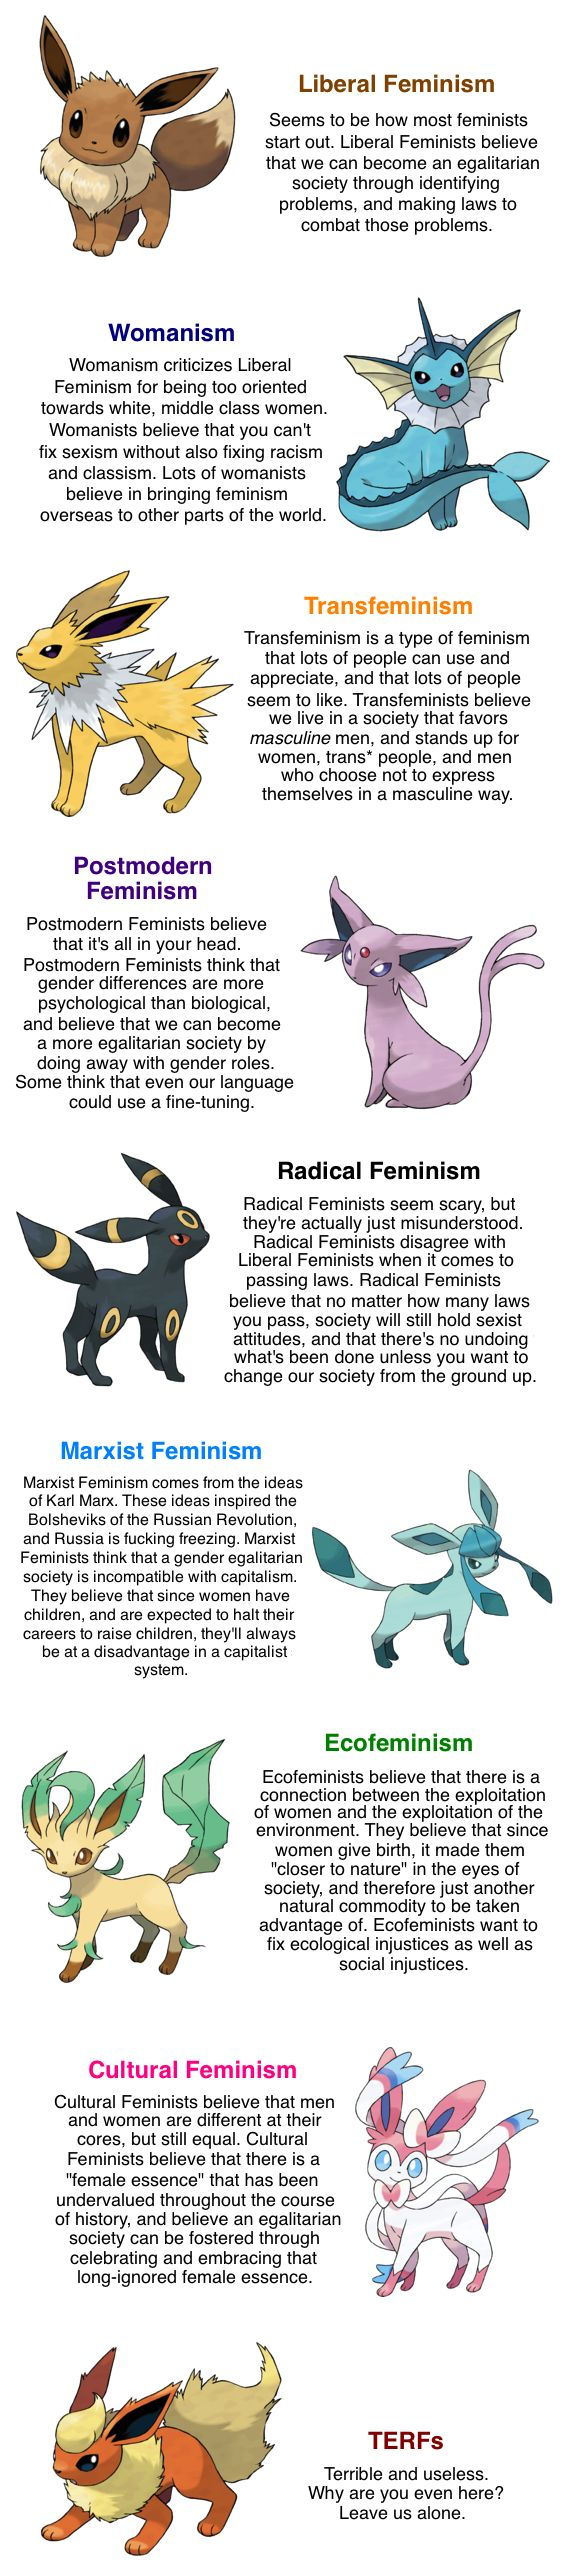 Learning Feminism Through Pokemon haha. I relate most to liberal,trans, womanism and eco feminism - equality for all! This is great because there are degrees to everything and it shows that it is not all or nothing. I also feel that everyone can relate somewhere in these descriptions. Mandy